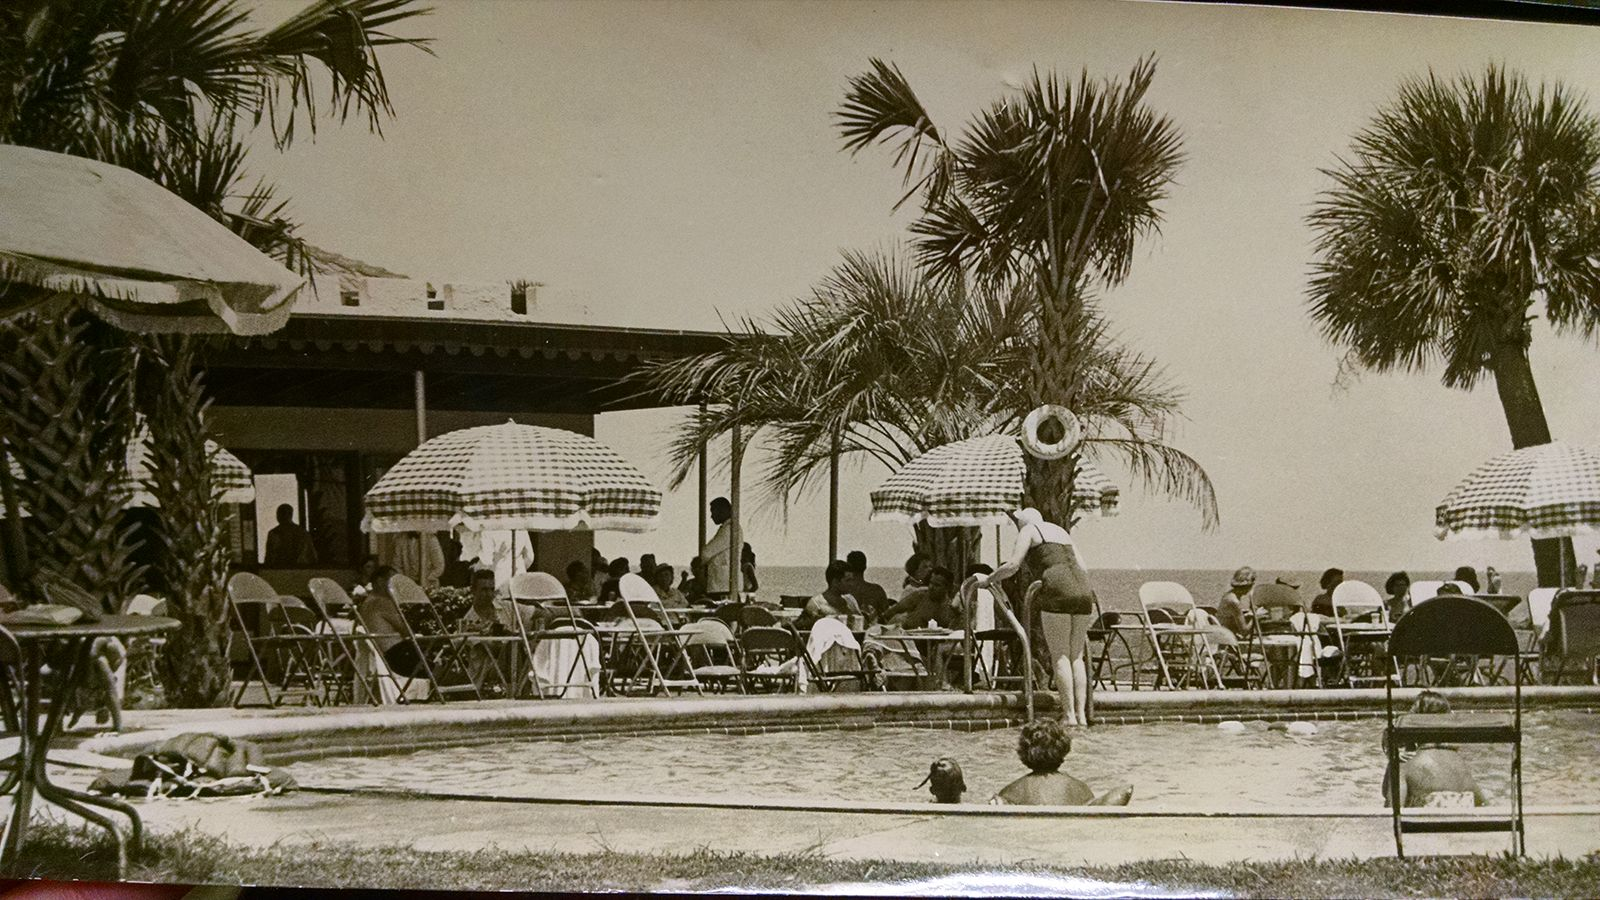 Historical Image of Outdoor Pool The King and Prince Beach and Golf Resort St. Simons Island Georgia